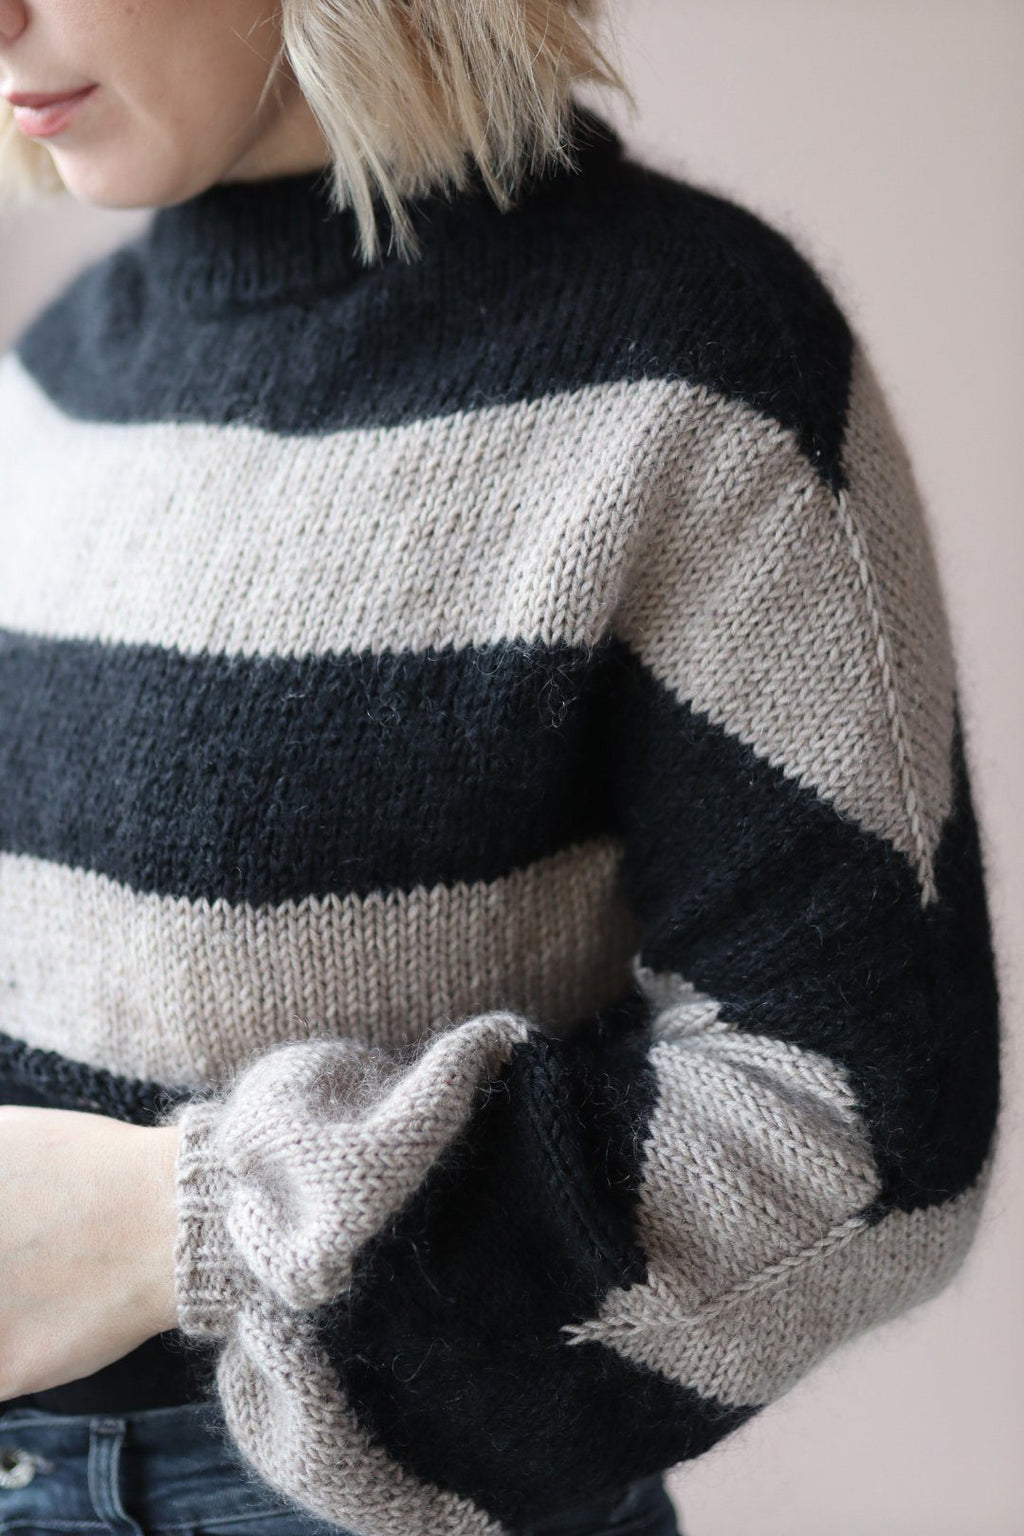 Theflaresweater ENGLISH sweater GS english patterns